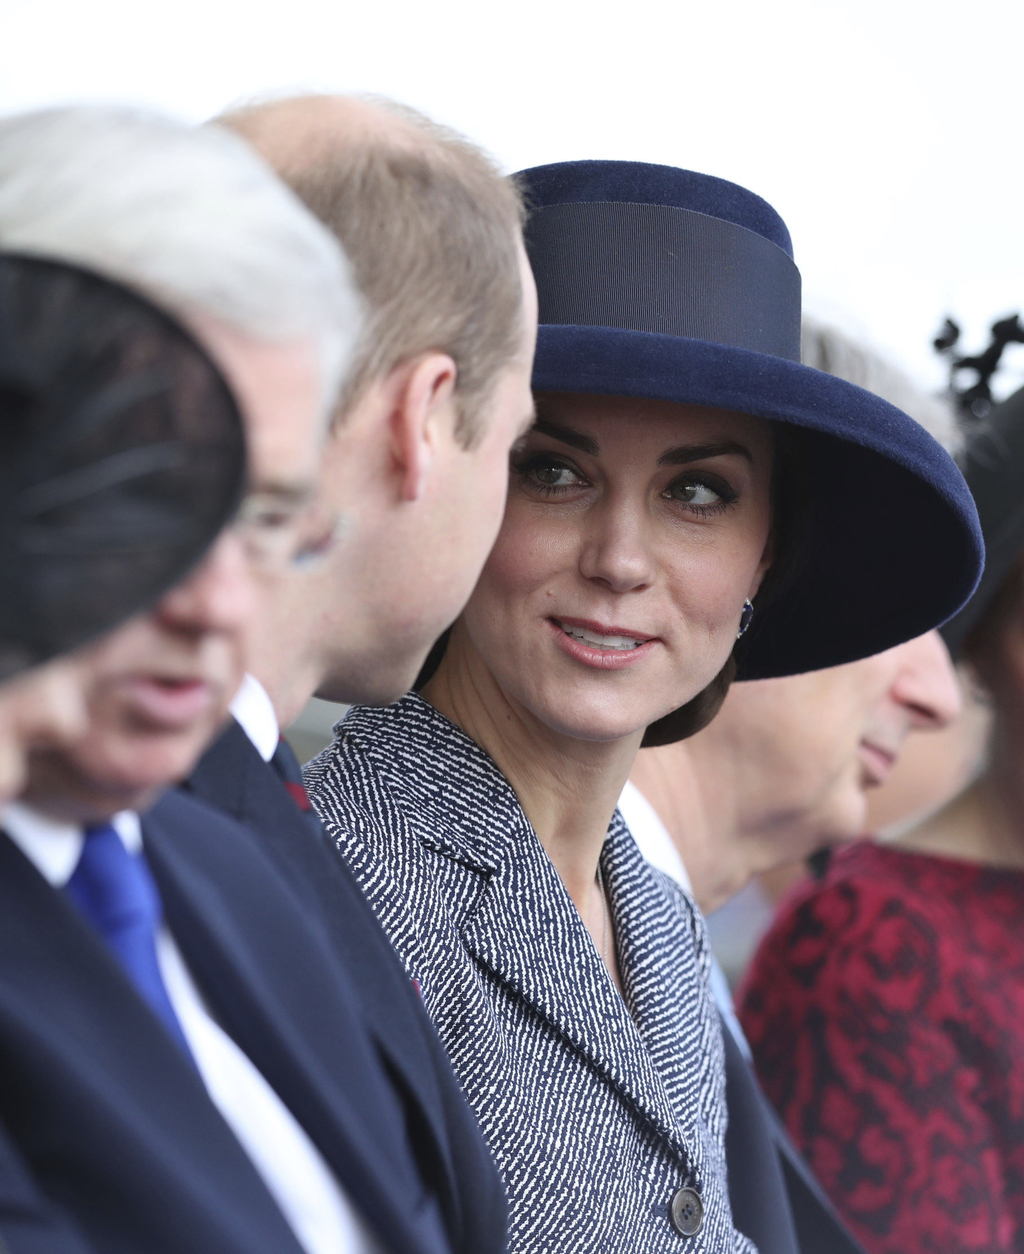 Britain's Kate Duchess of Cambridge looks toward Prince William at a service on Horse Guards Parade in London, ahead of the unveiling o...